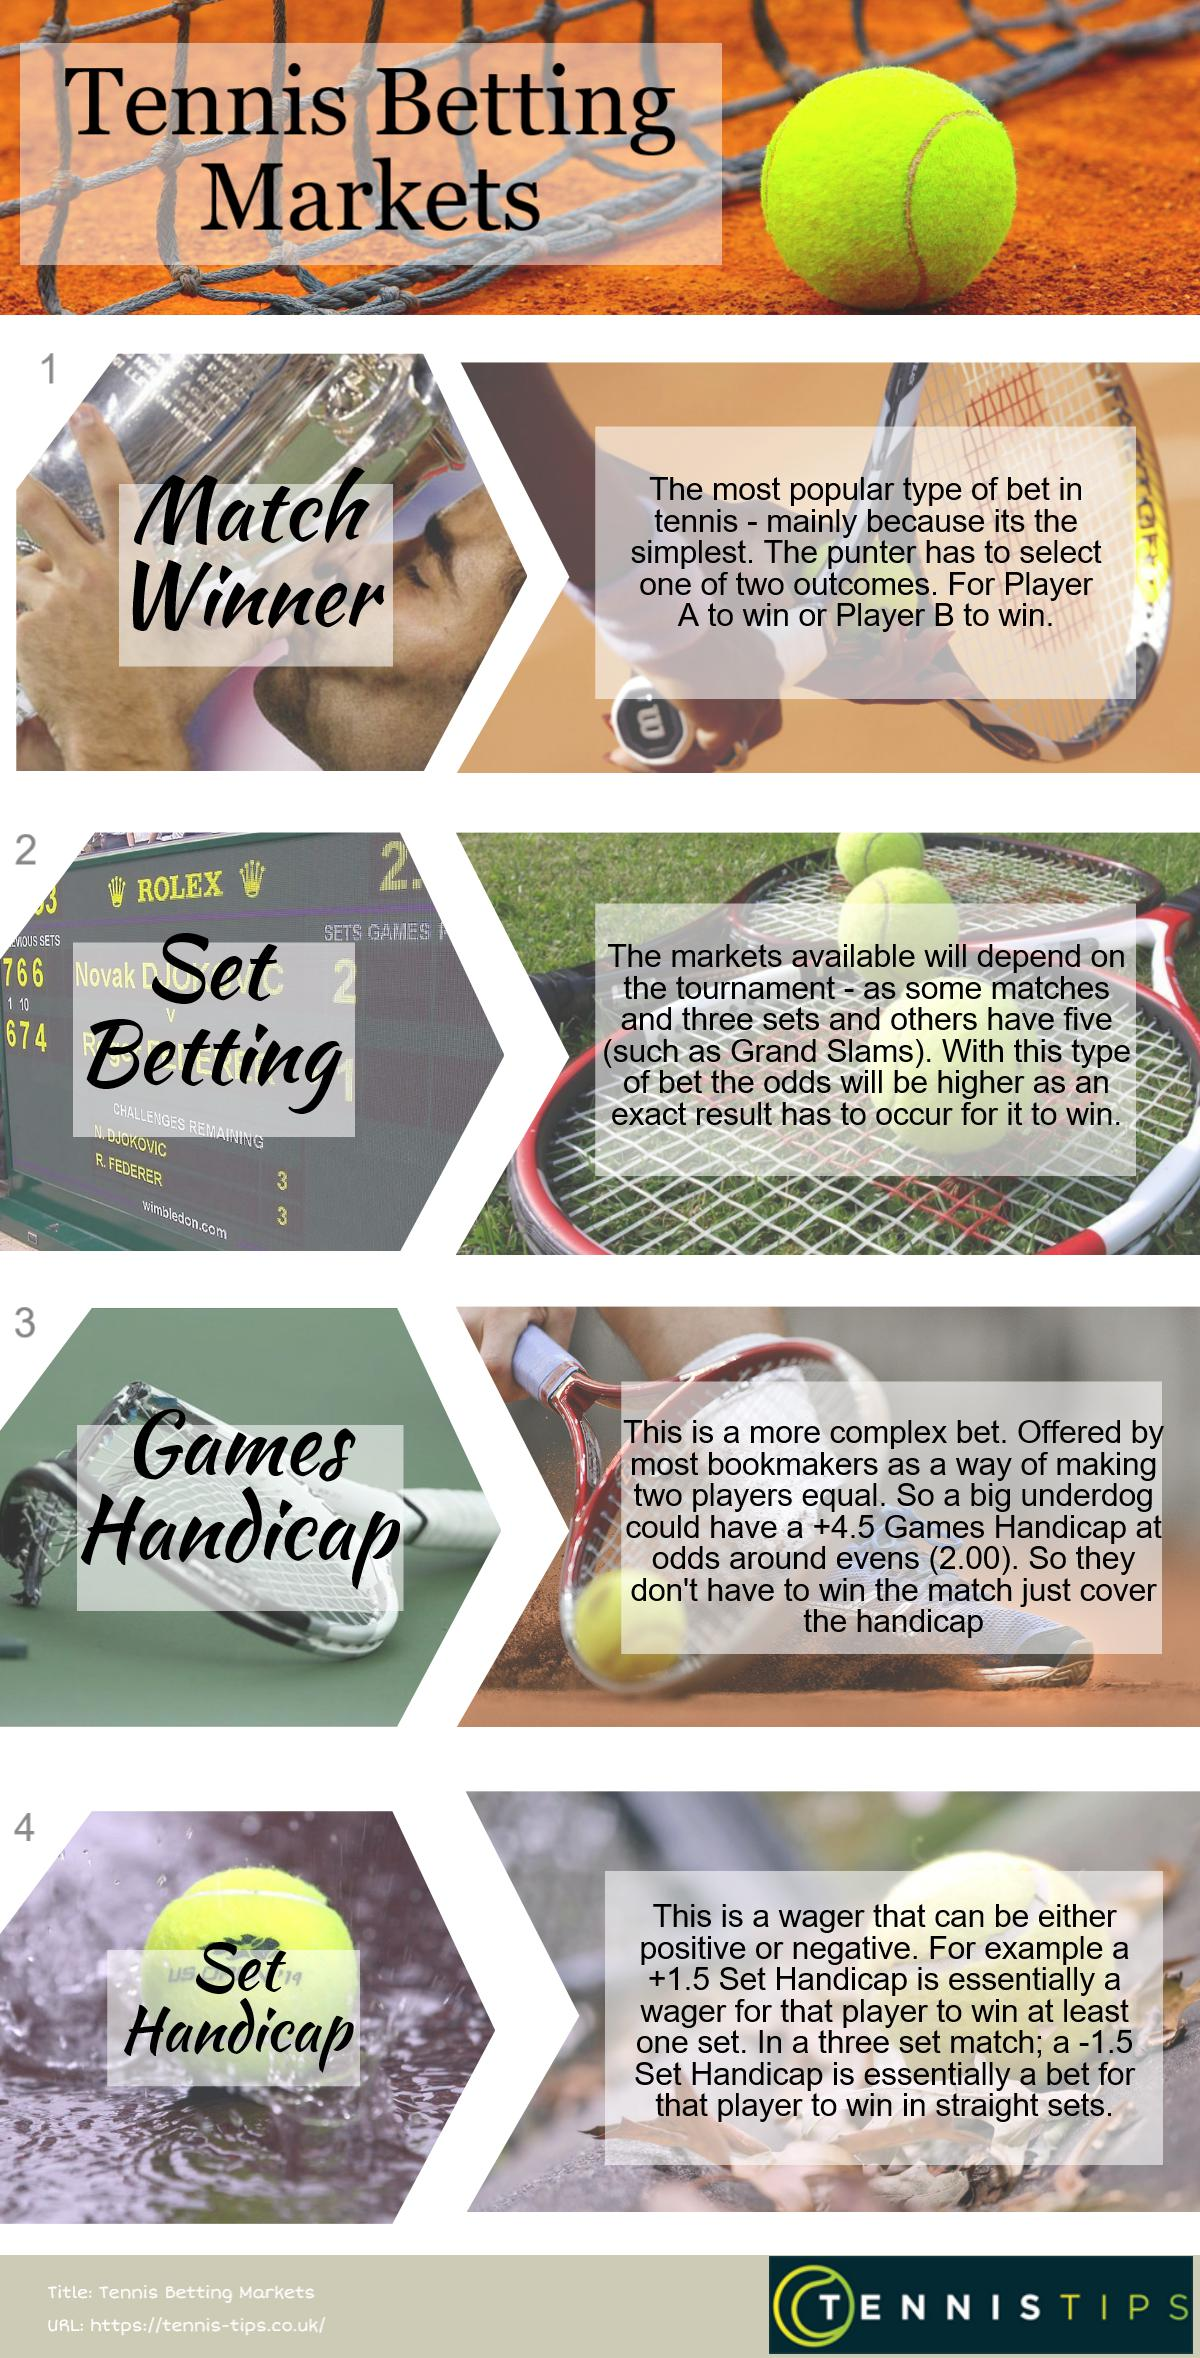 Tennis Betting Markets & Bet Types | Tennis Tips UK Comprehensive Guide